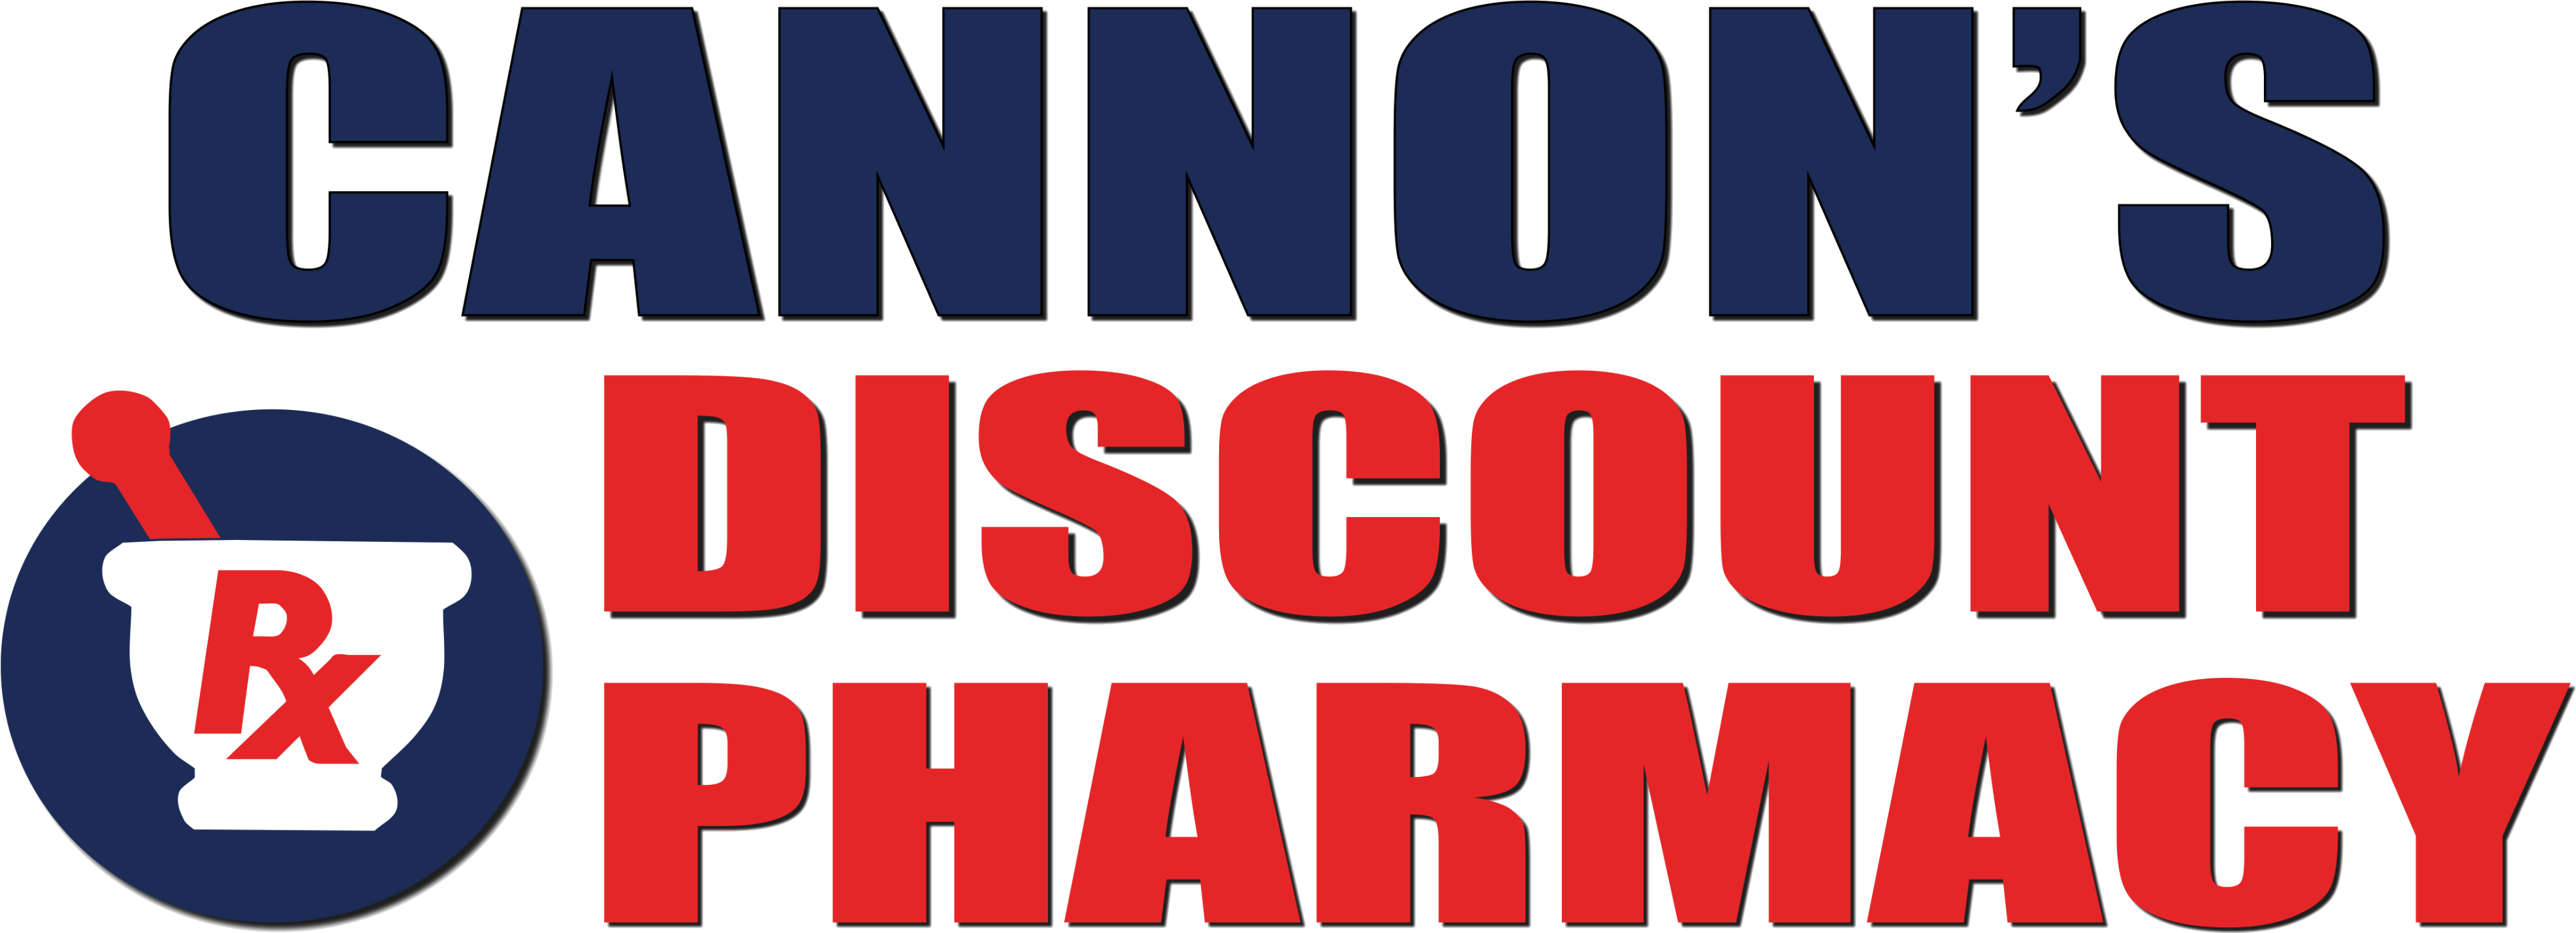 Cannon's Discount Pharmacy